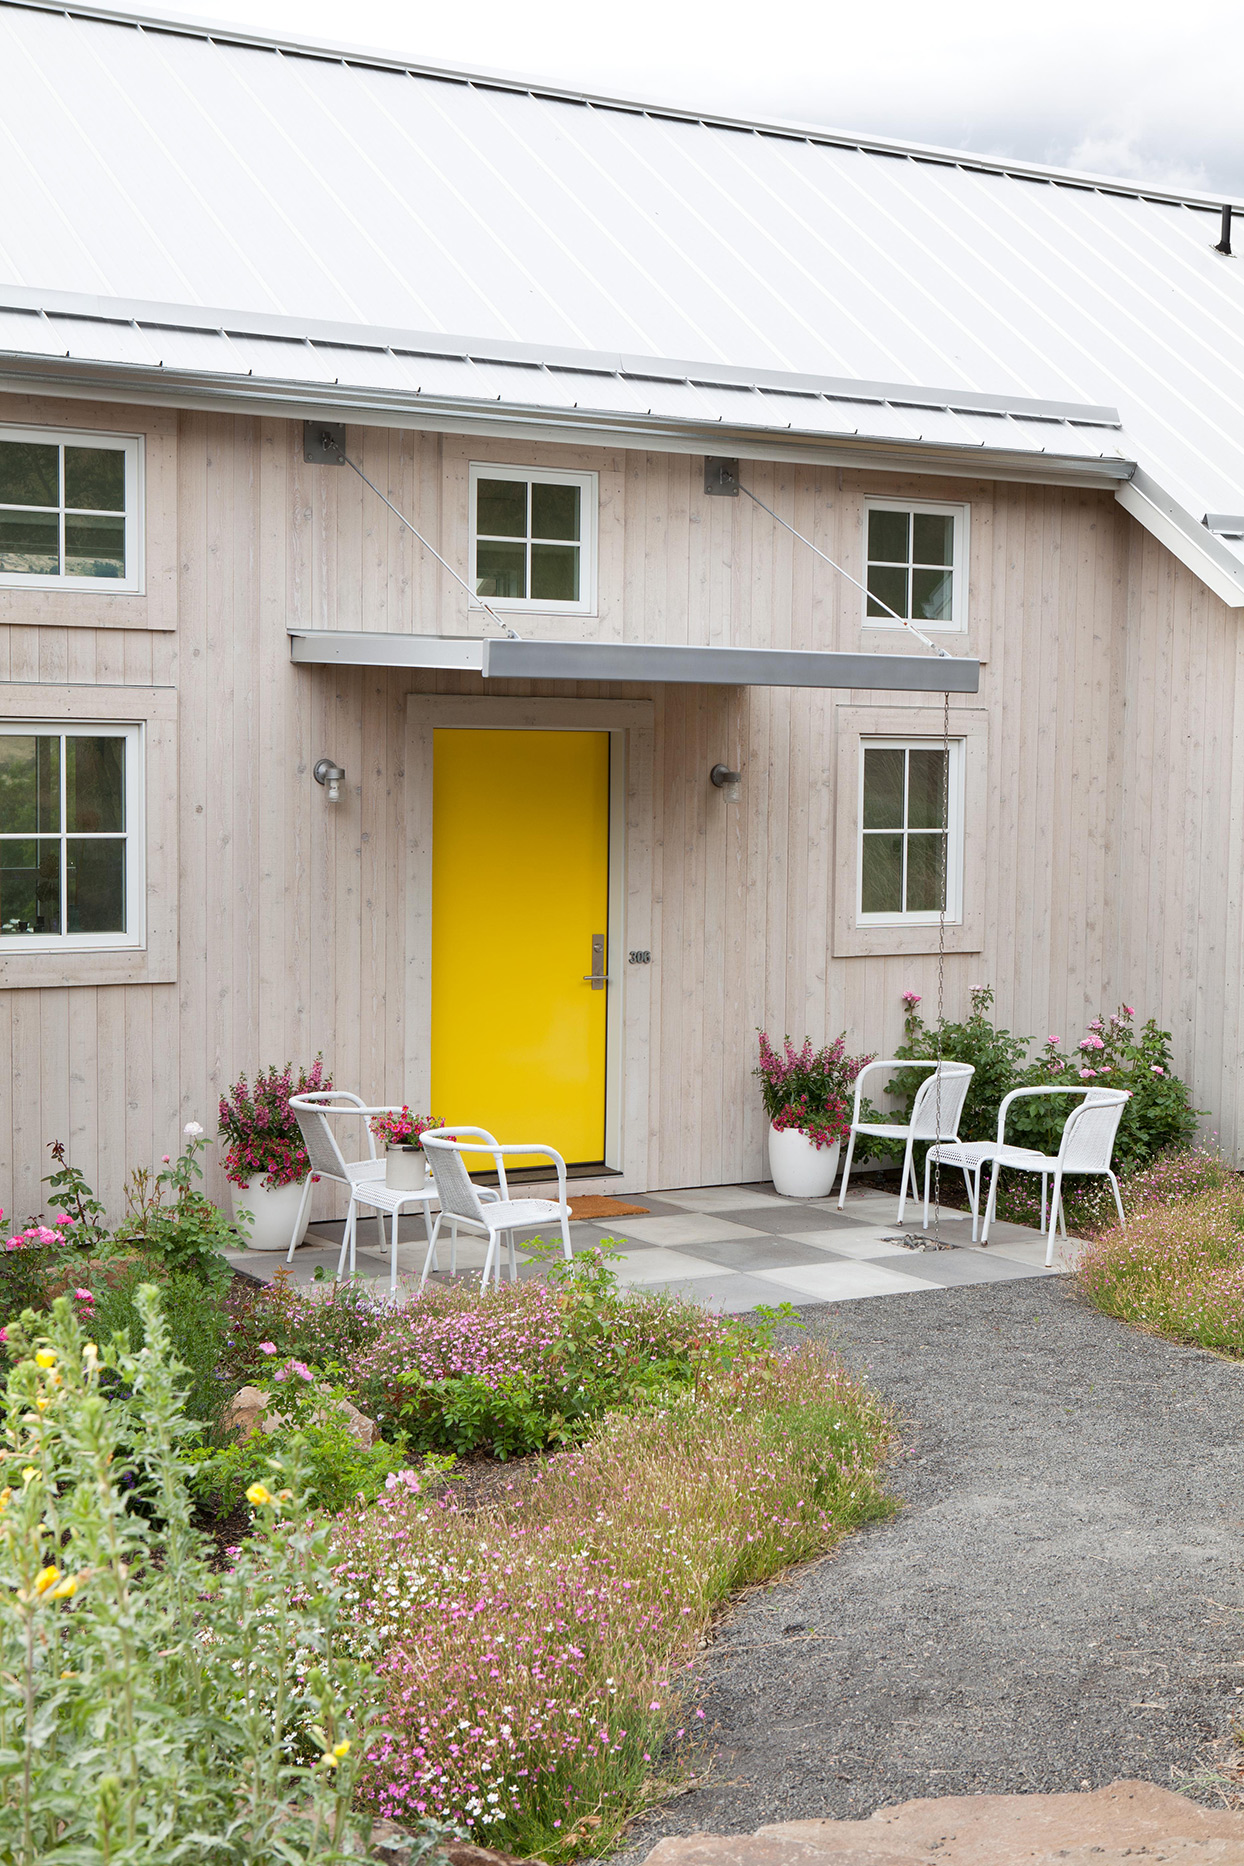 Modern style exterior with yellow door